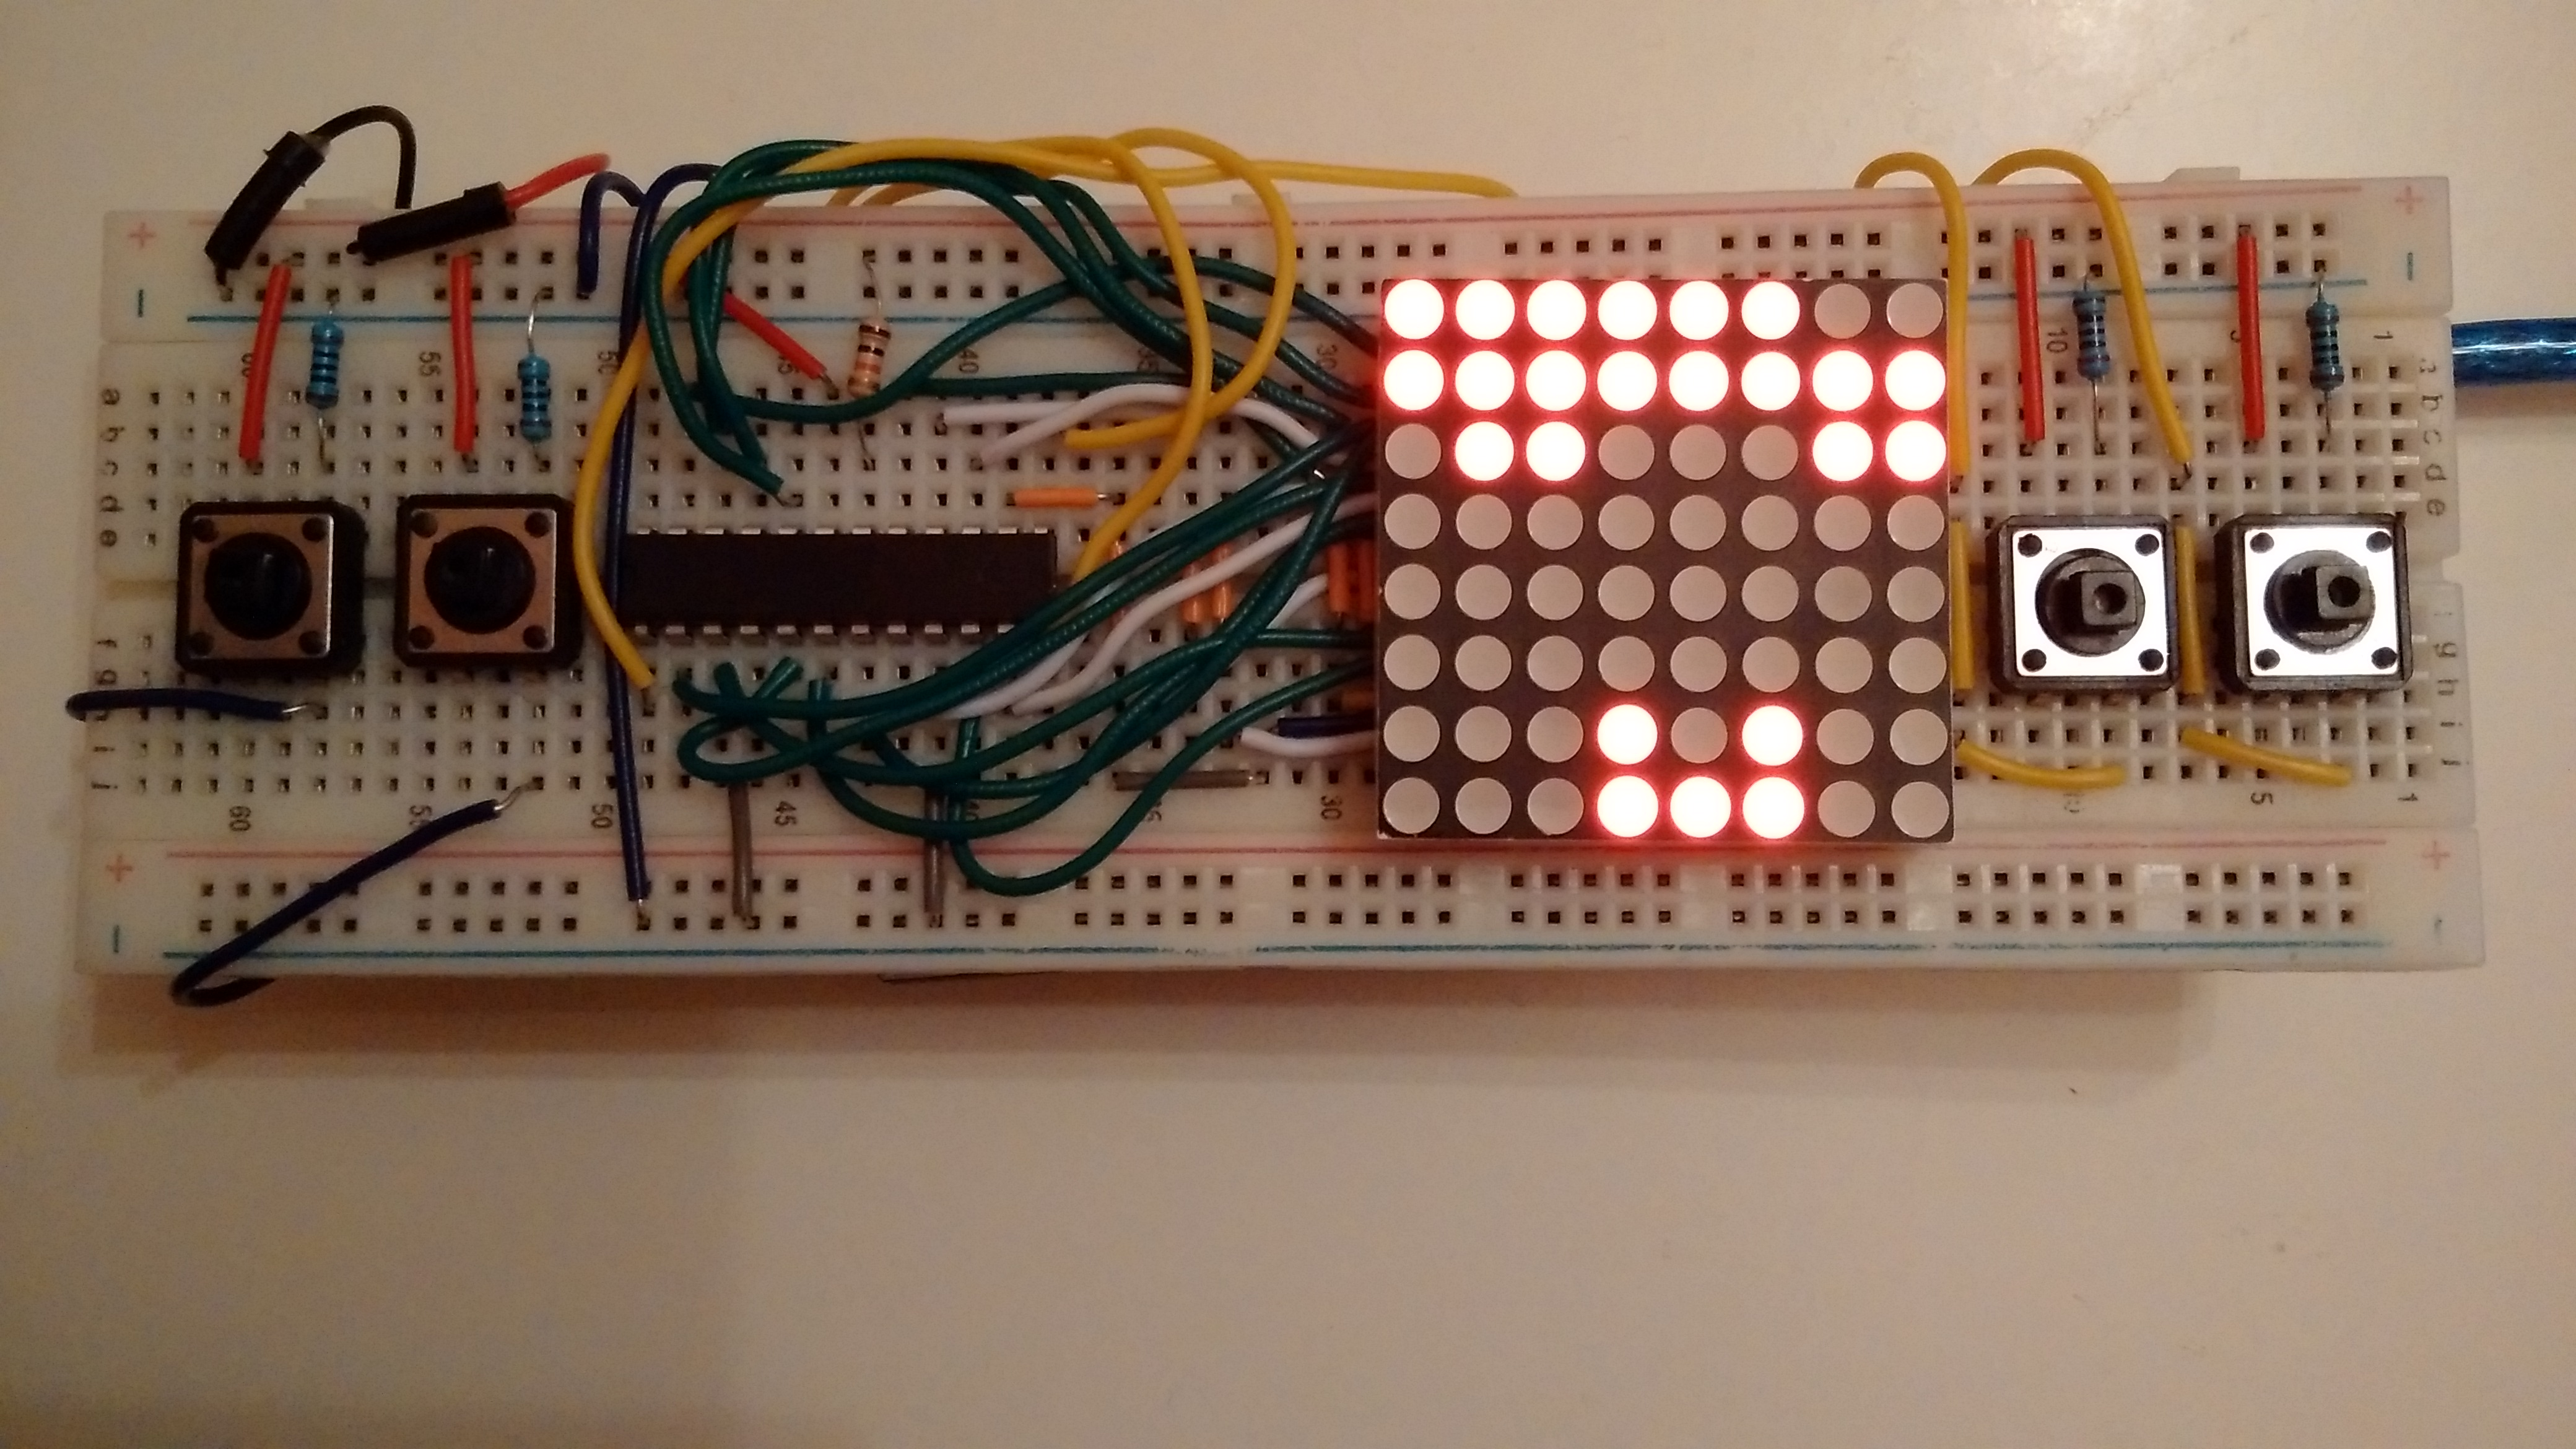 Game with 8x8 LED matrix on Arduino